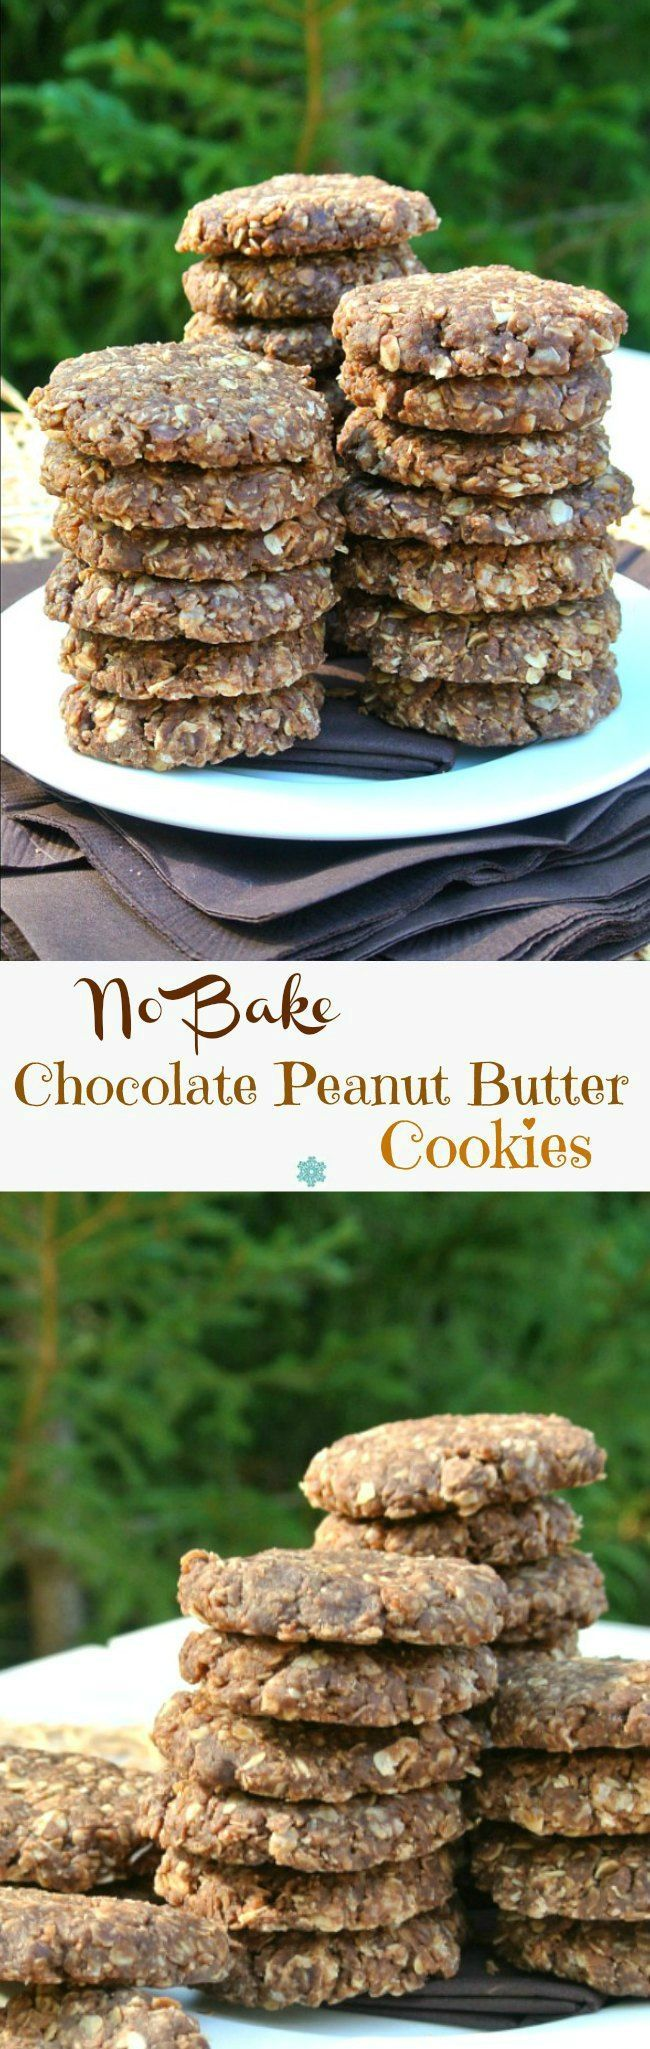 No Bake Chocolate Peanut Butter Cookies are a favorite, have no refined sugar, take 10 minutes to make, have the texture of a cookie. 5 Wins!  @lovemysilk  #DoPlants